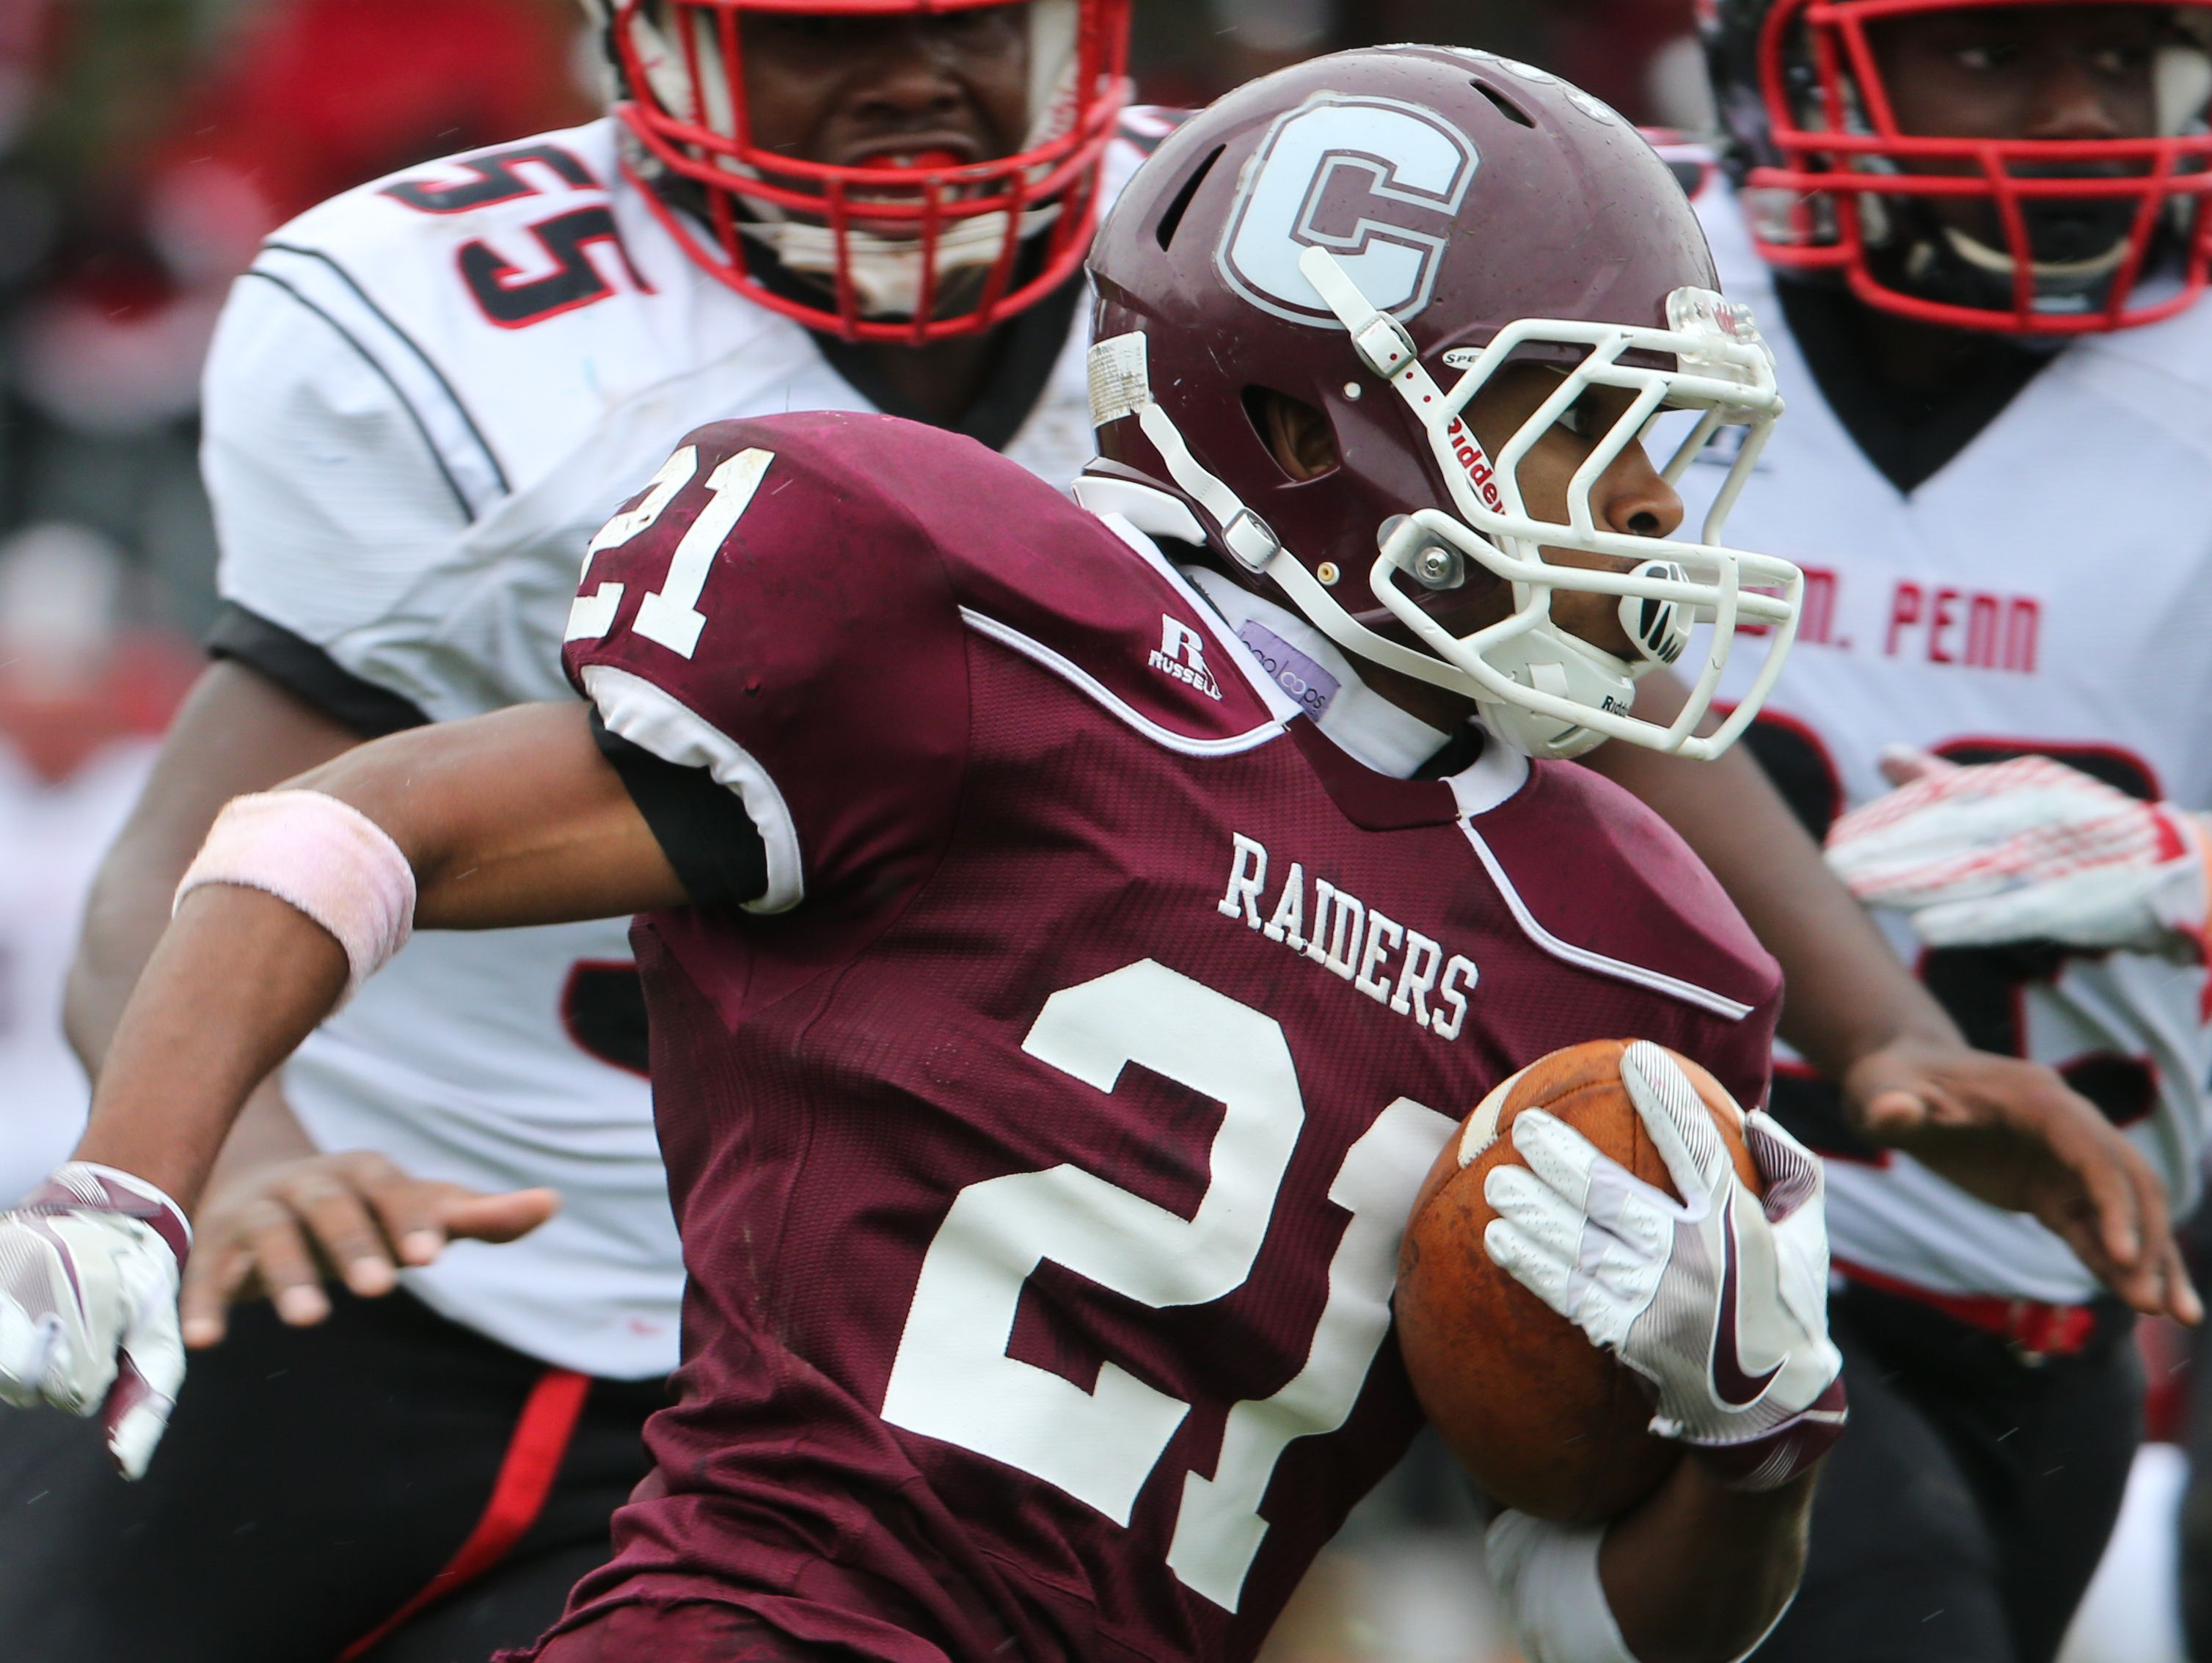 Concord's Kyle Batch runs the ball in the fourth quarter.